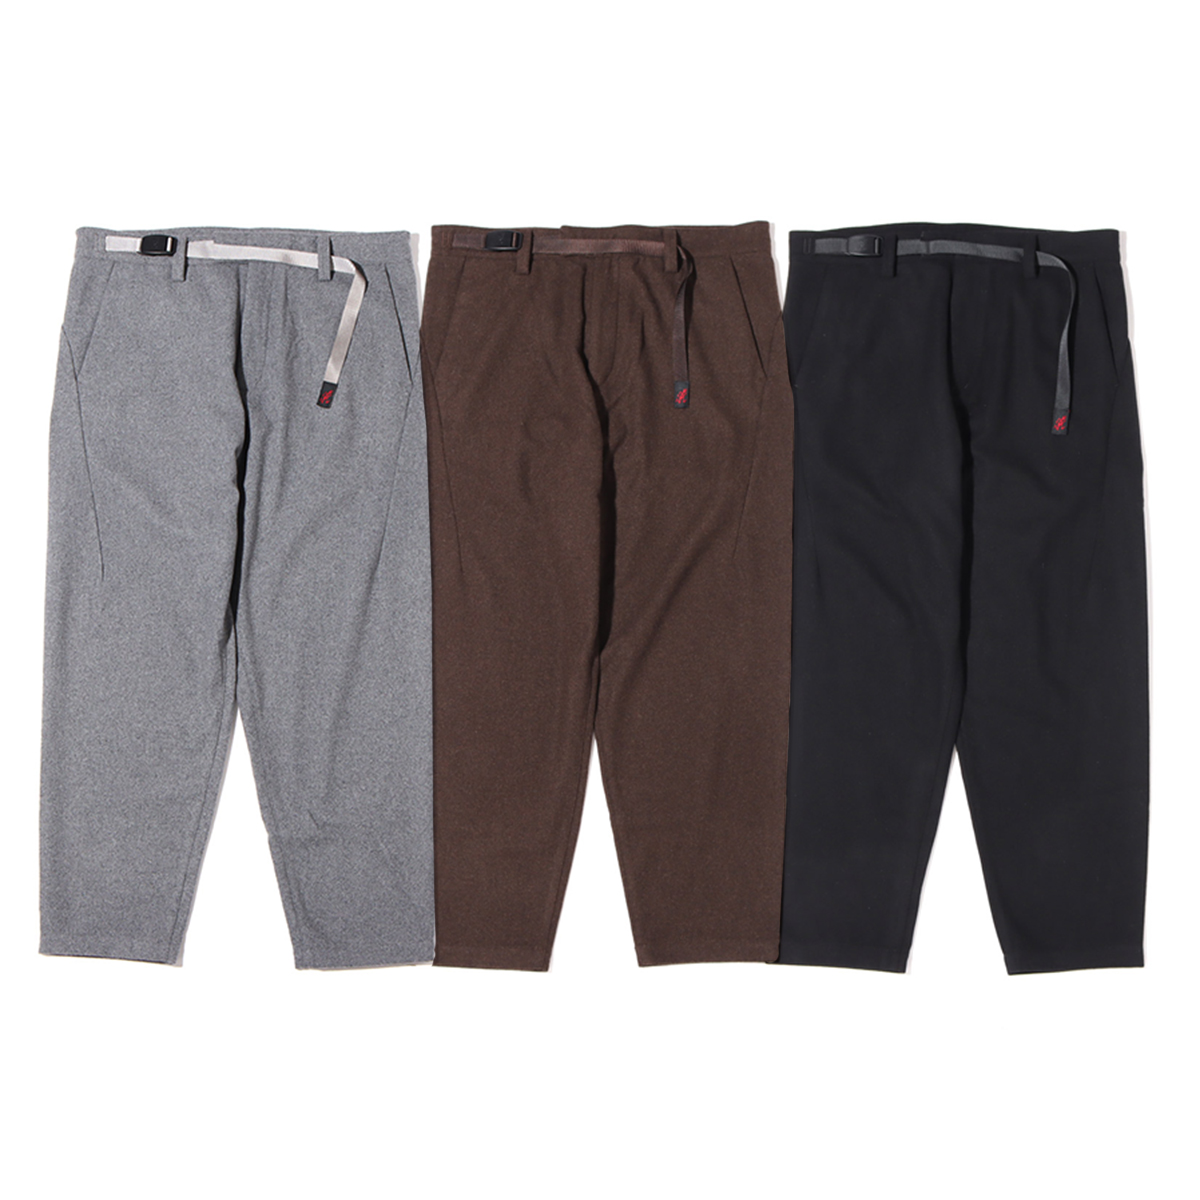 WHITE MOUNTAINEERING × GRAMICCI WOOL DATED PANTS